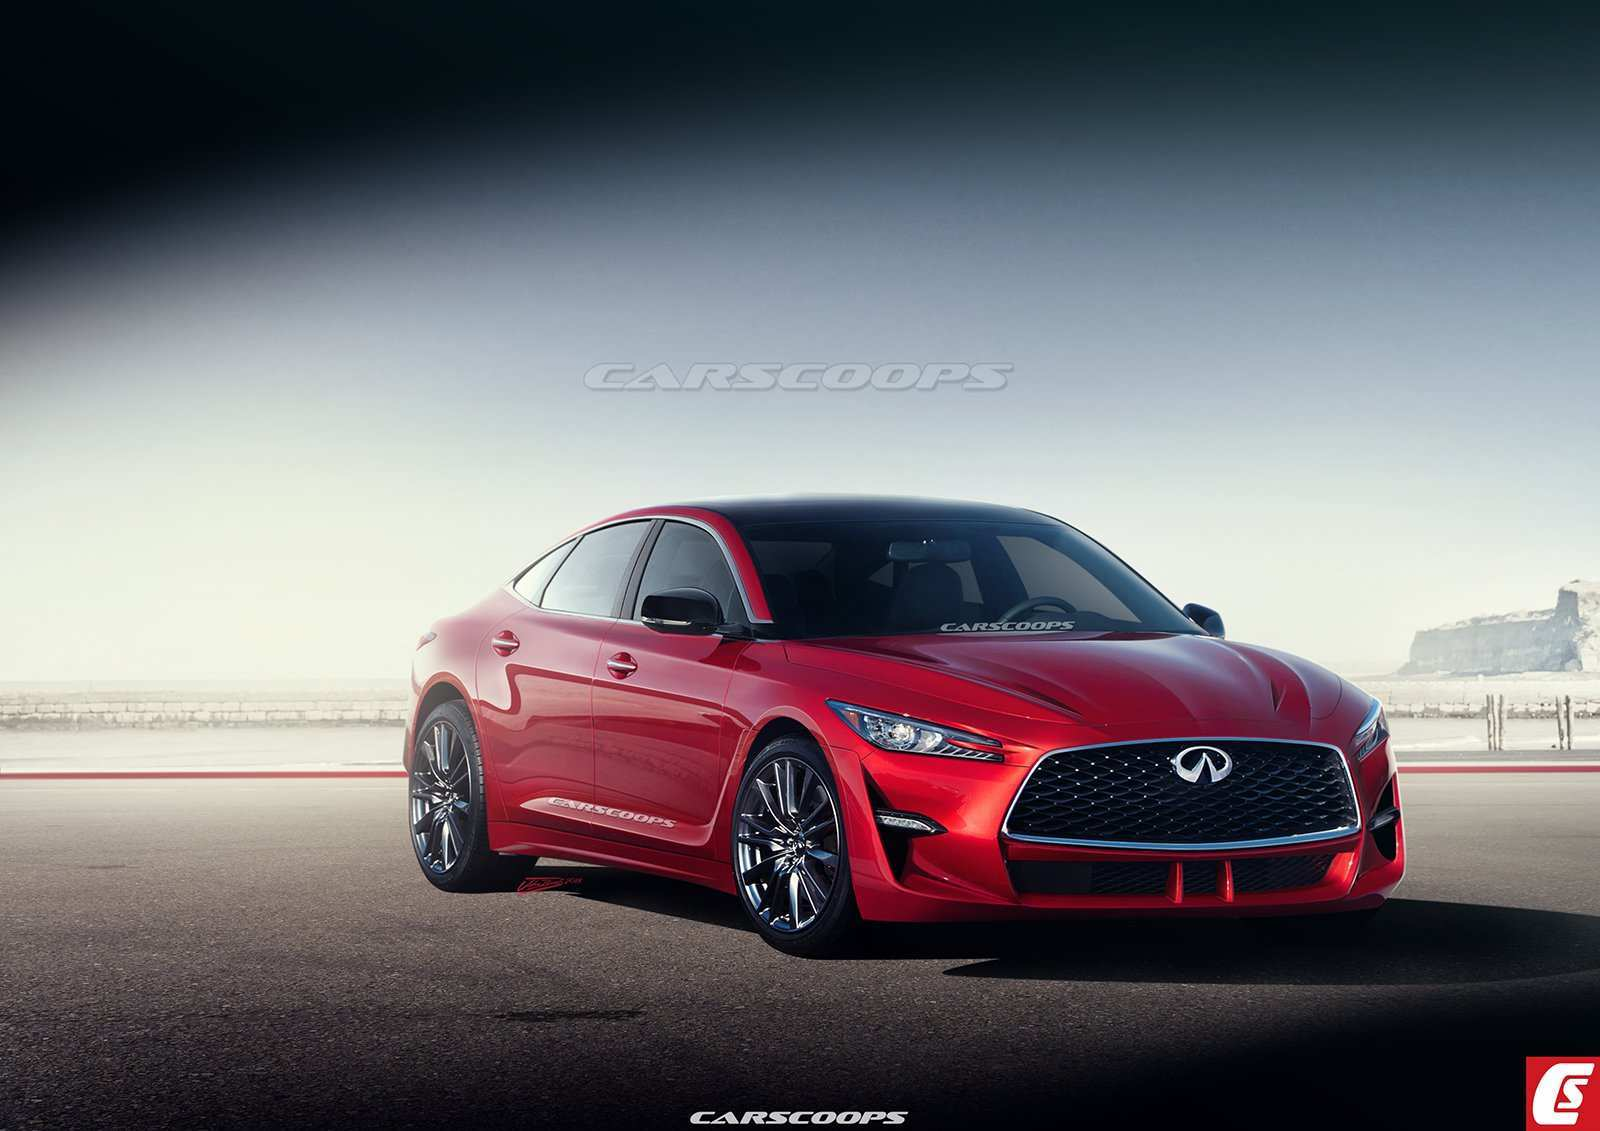 27 All New 2020 Infiniti Red Sport Specs and Review by 2020 Infiniti Red Sport